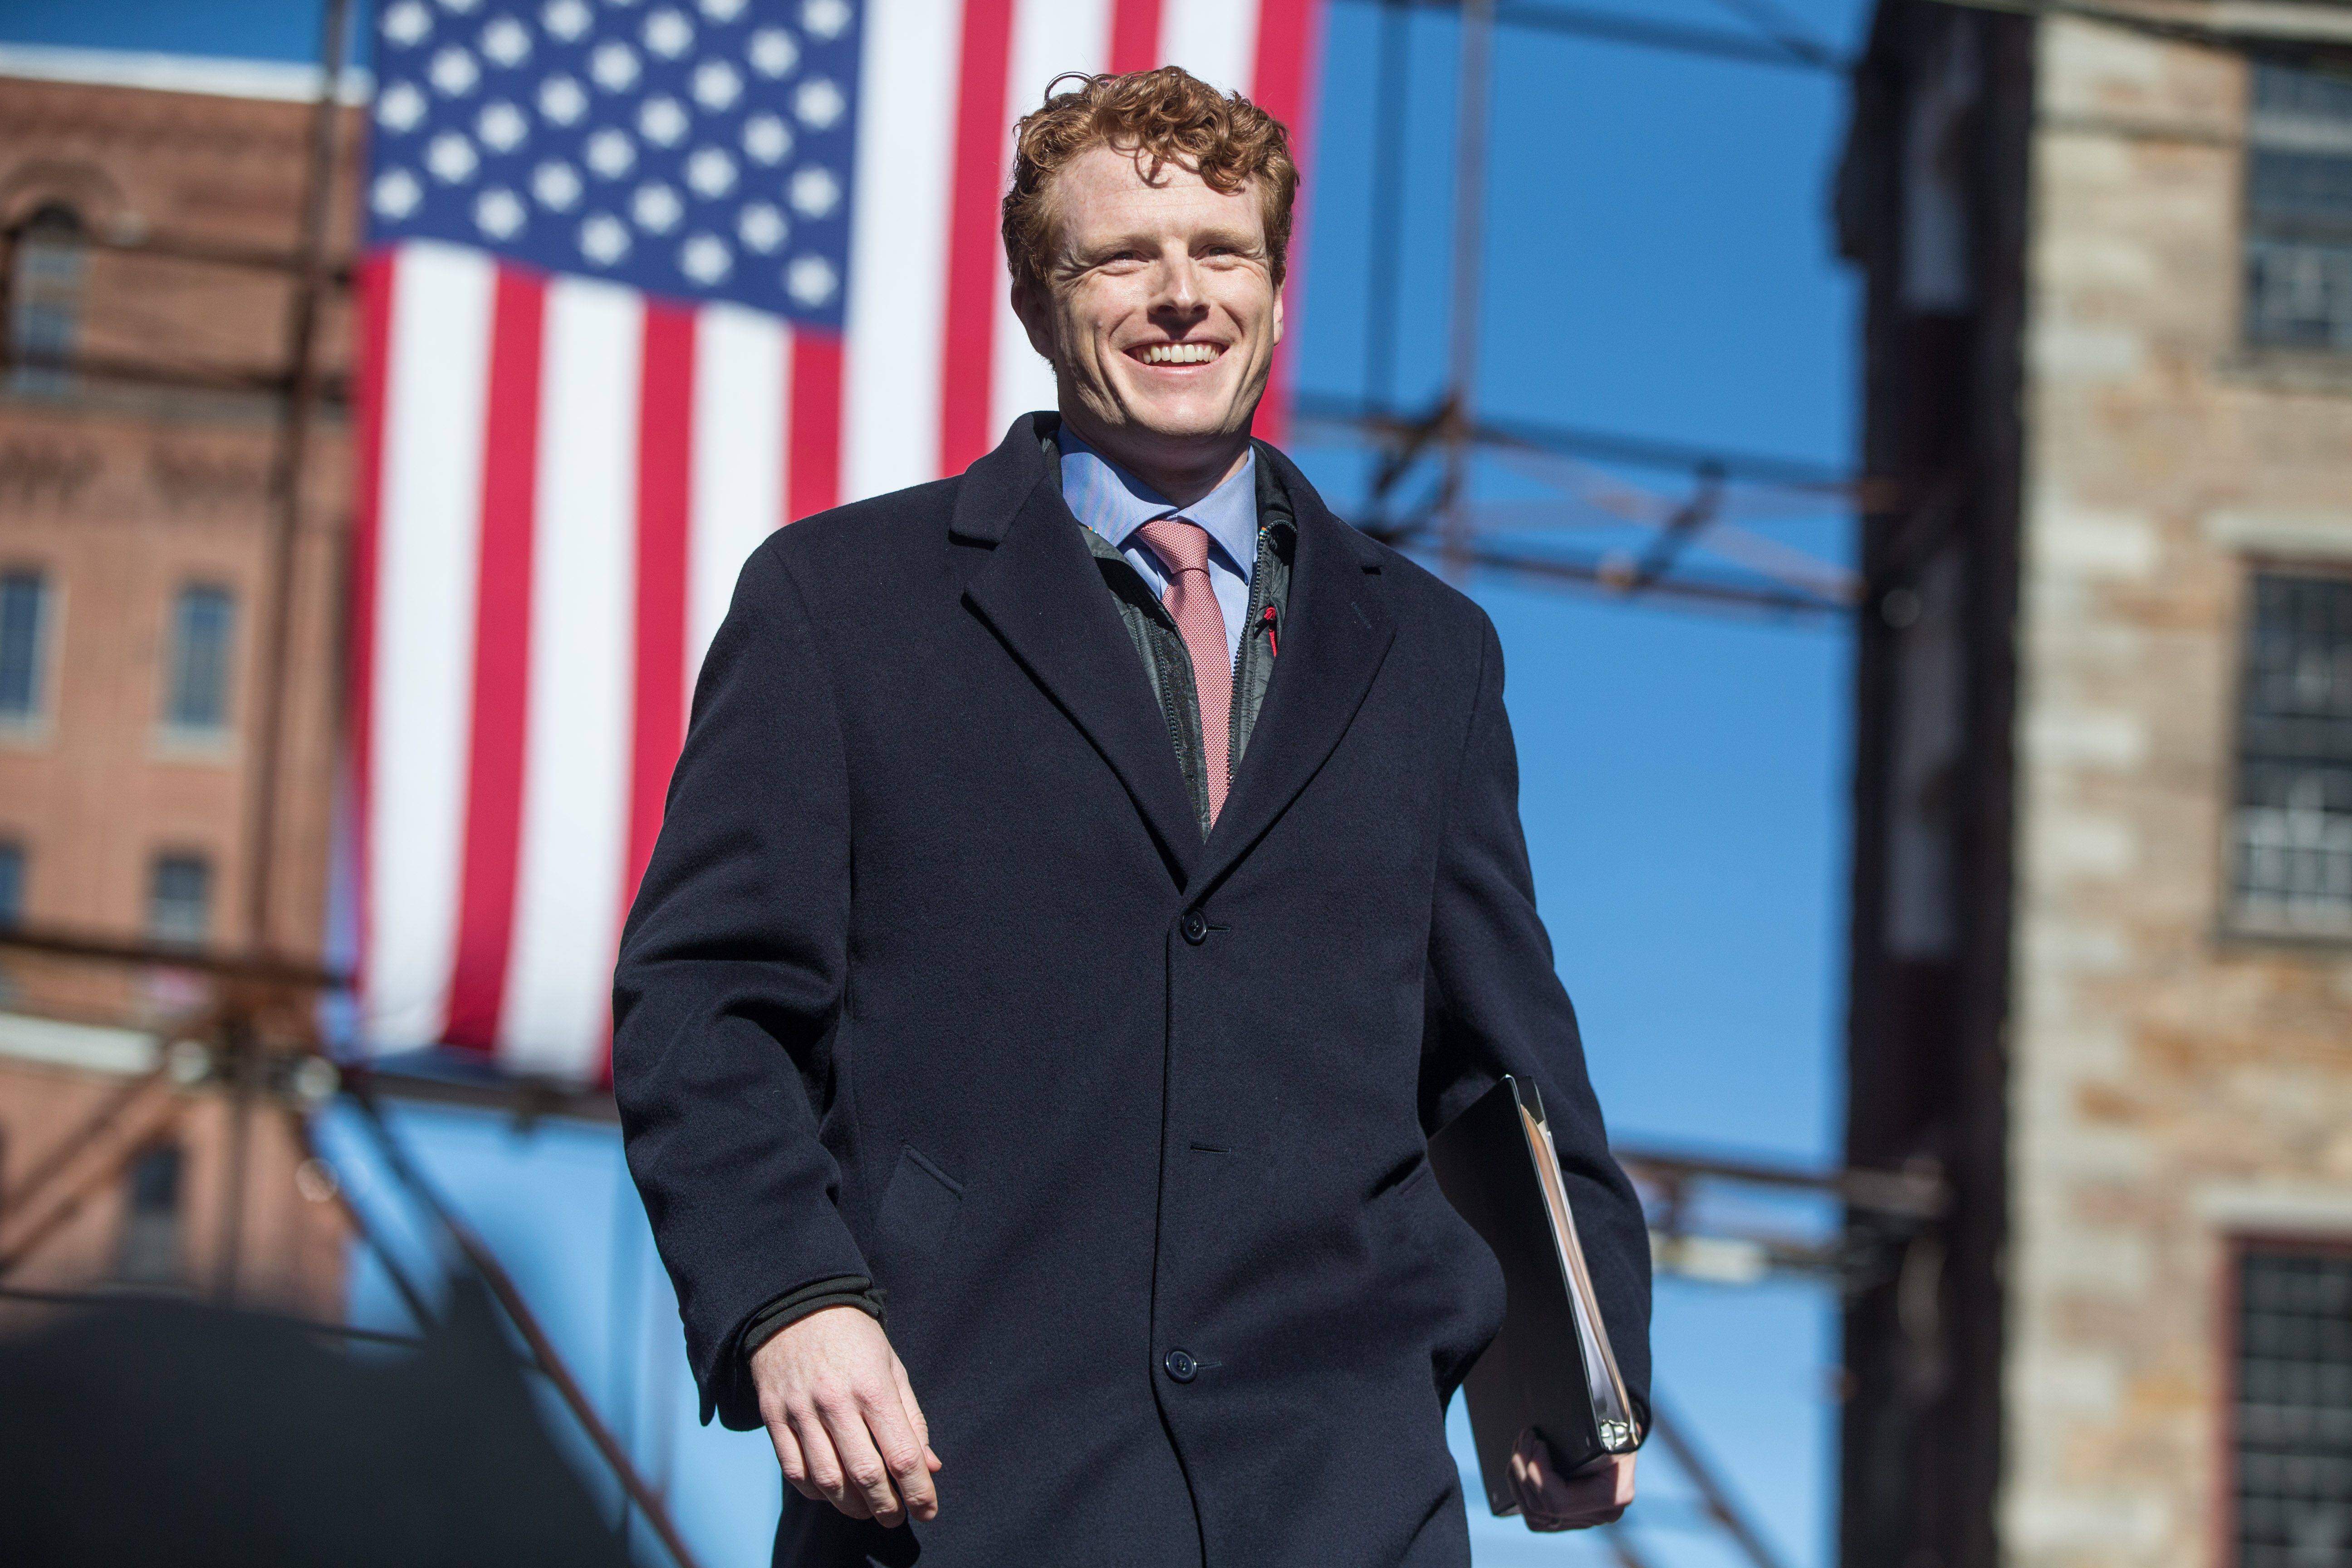 'They're going to have to fight for every vote': Rep. Joe Kennedy III set to launch campaign against US Sen. Ed Markey